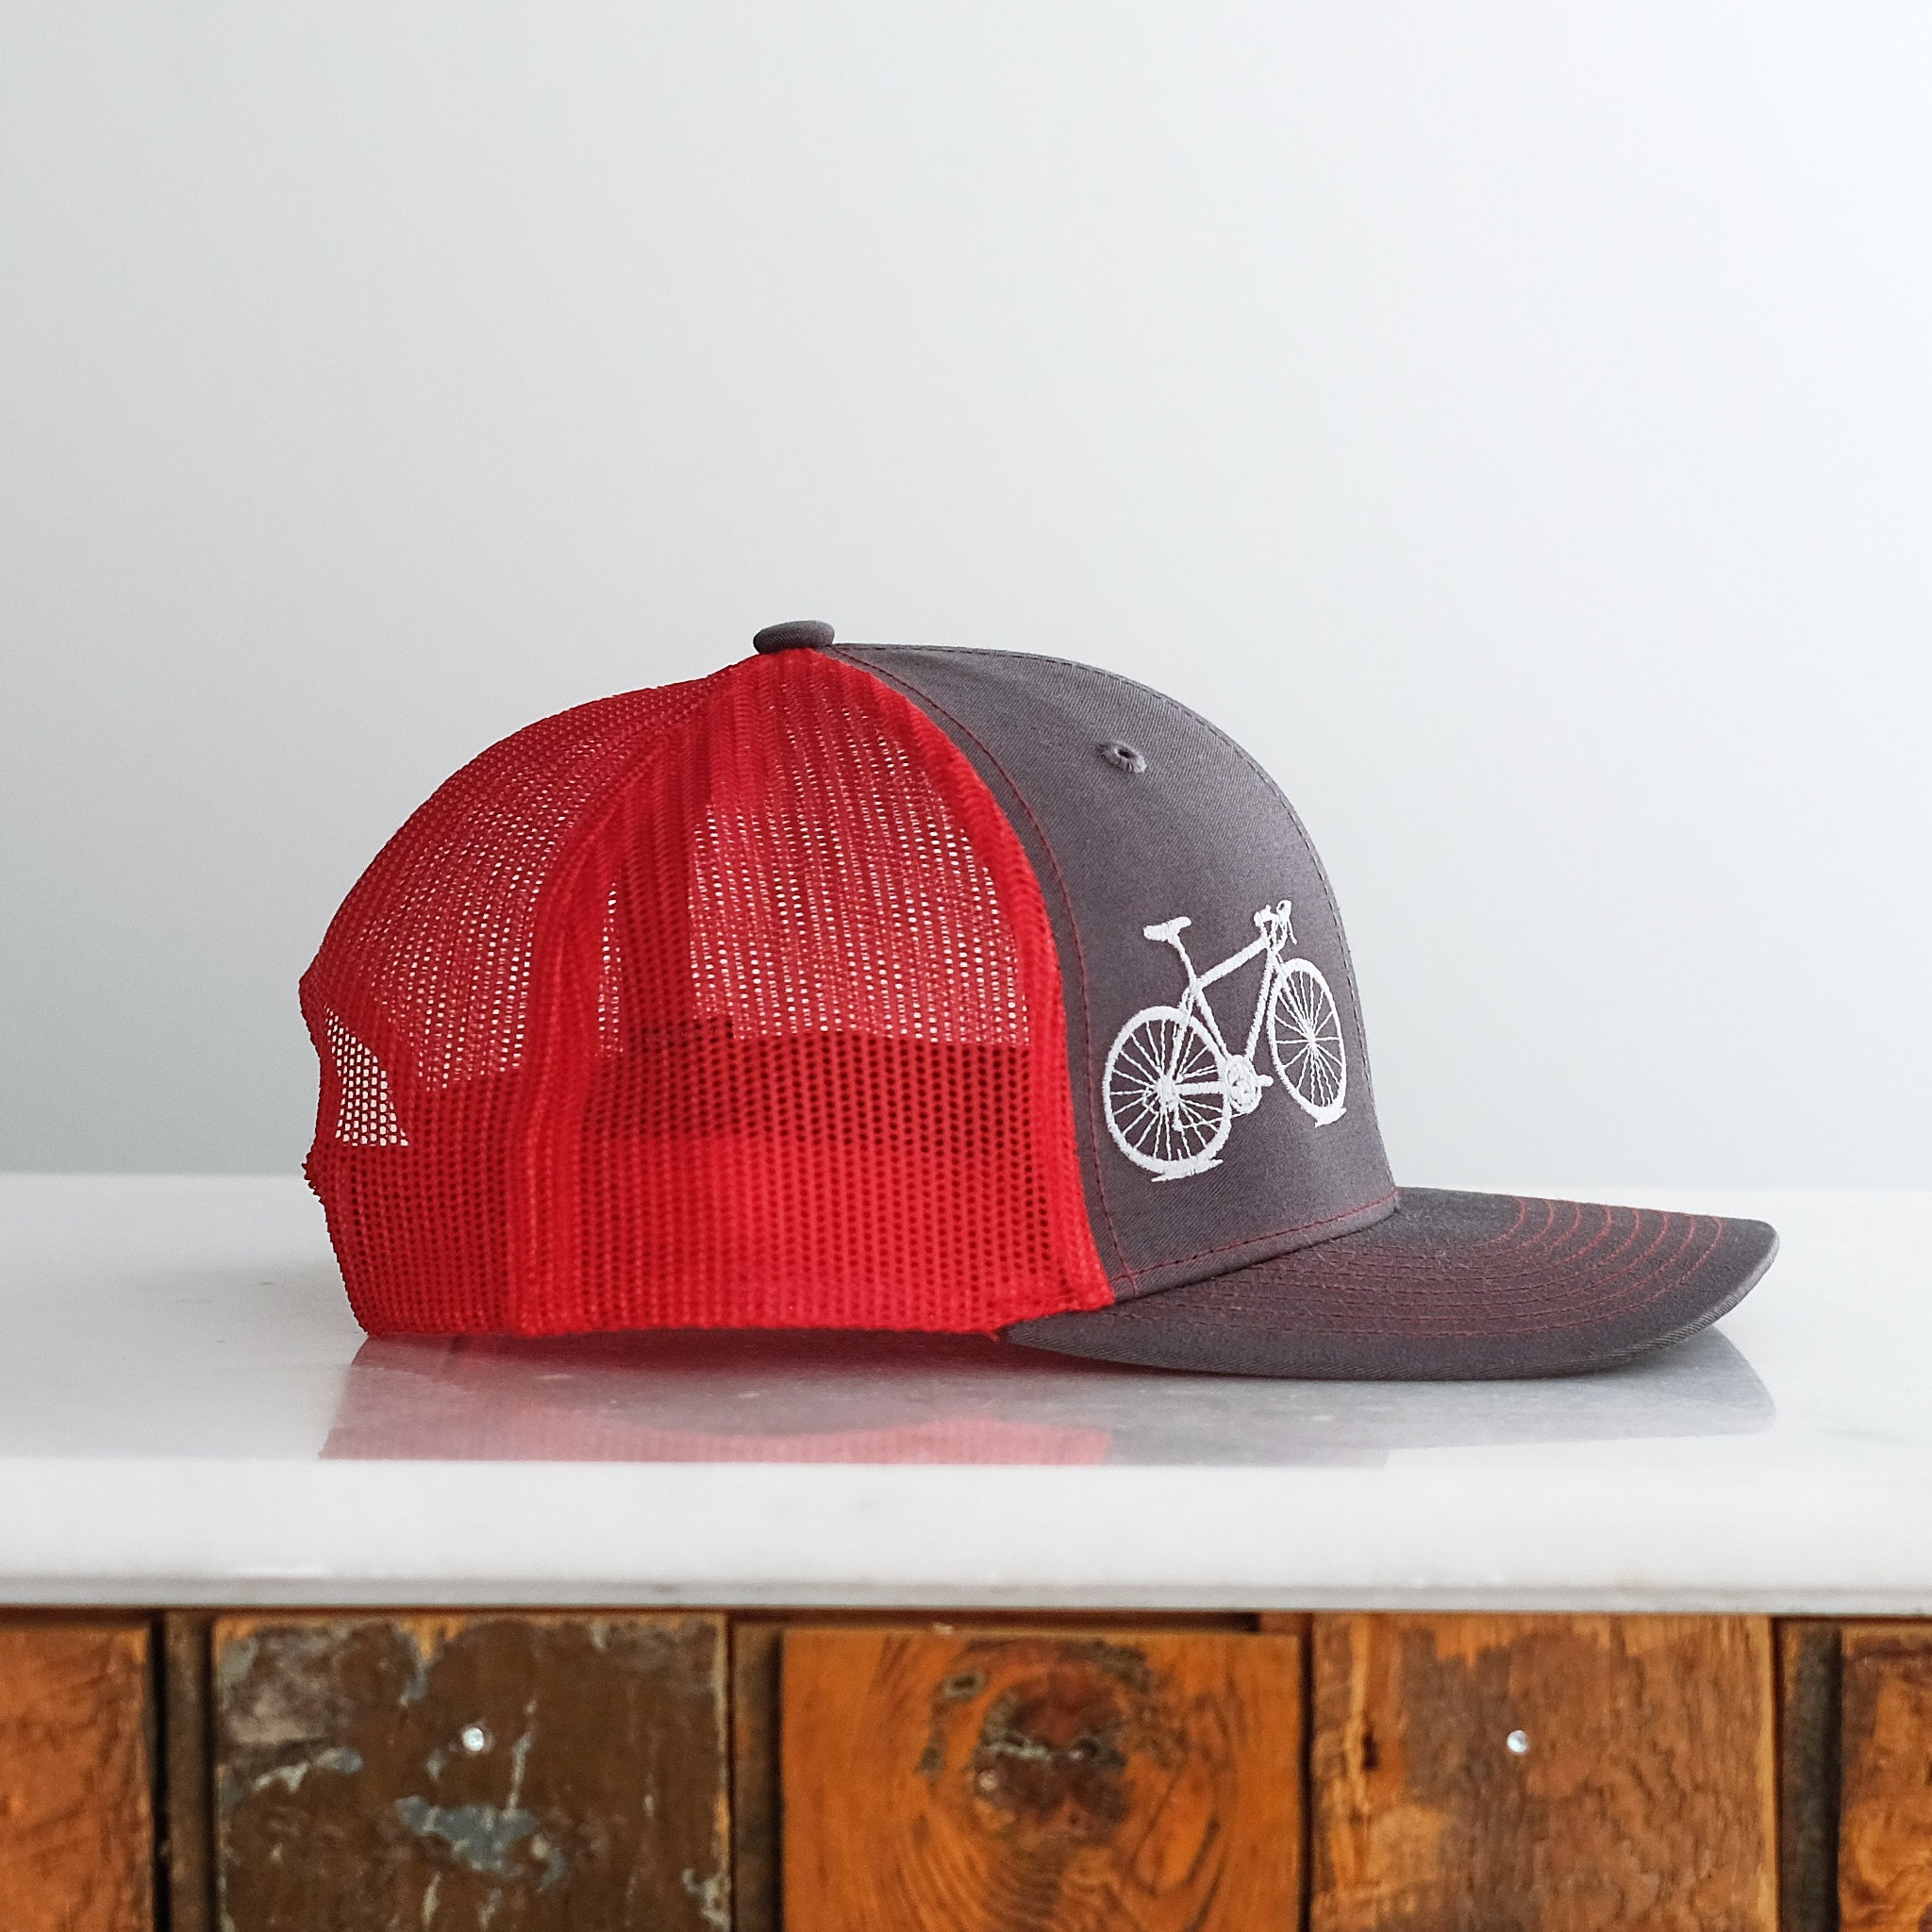 Bicycle Trucker Cap, matte gray on charcoal/red hat